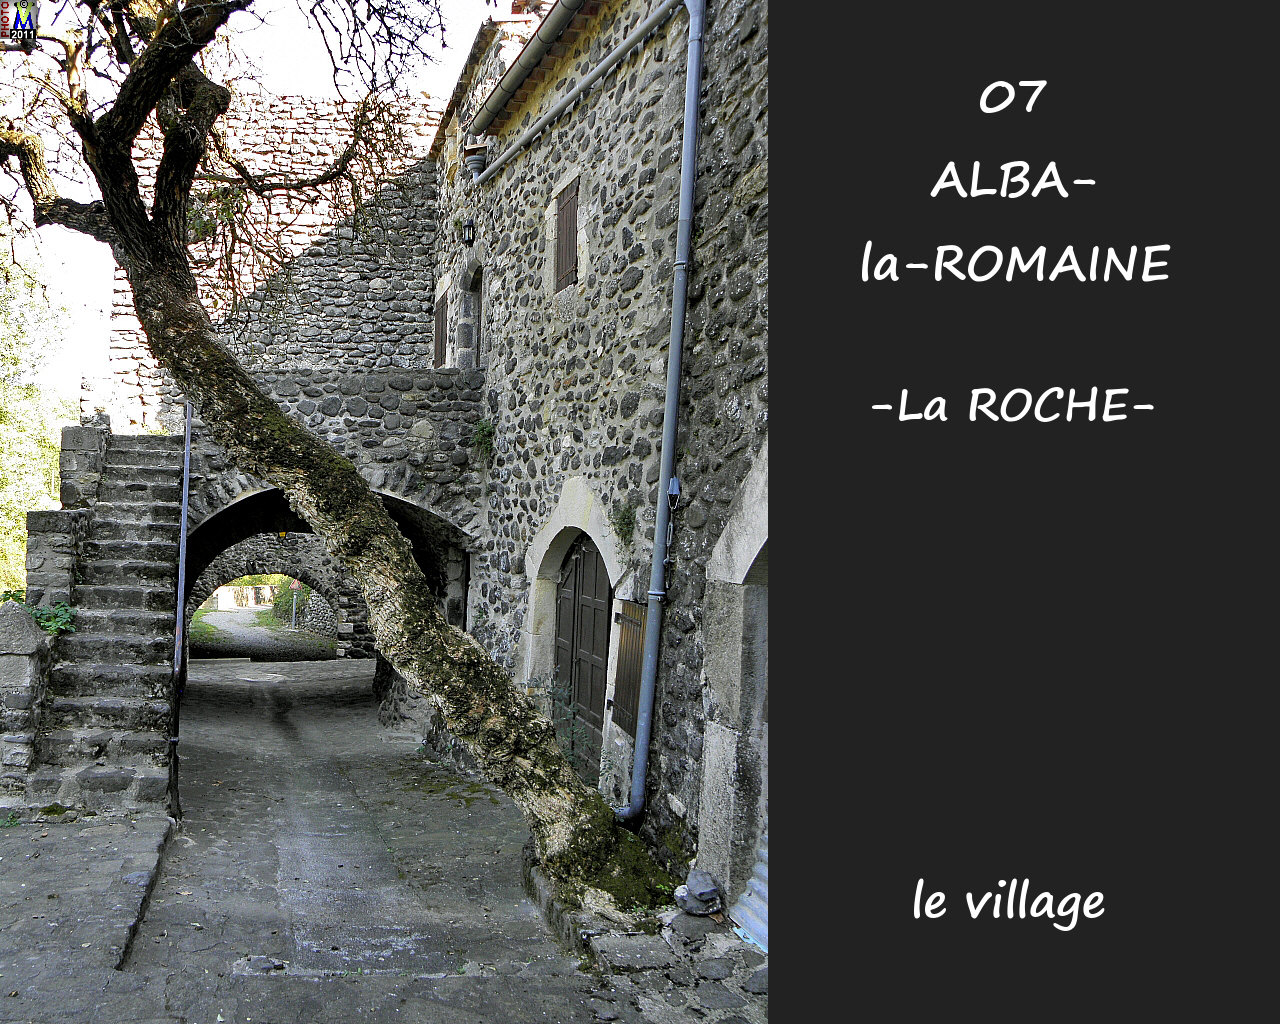 07ALBA-ROMAINEzROCHE_village_122.jpg